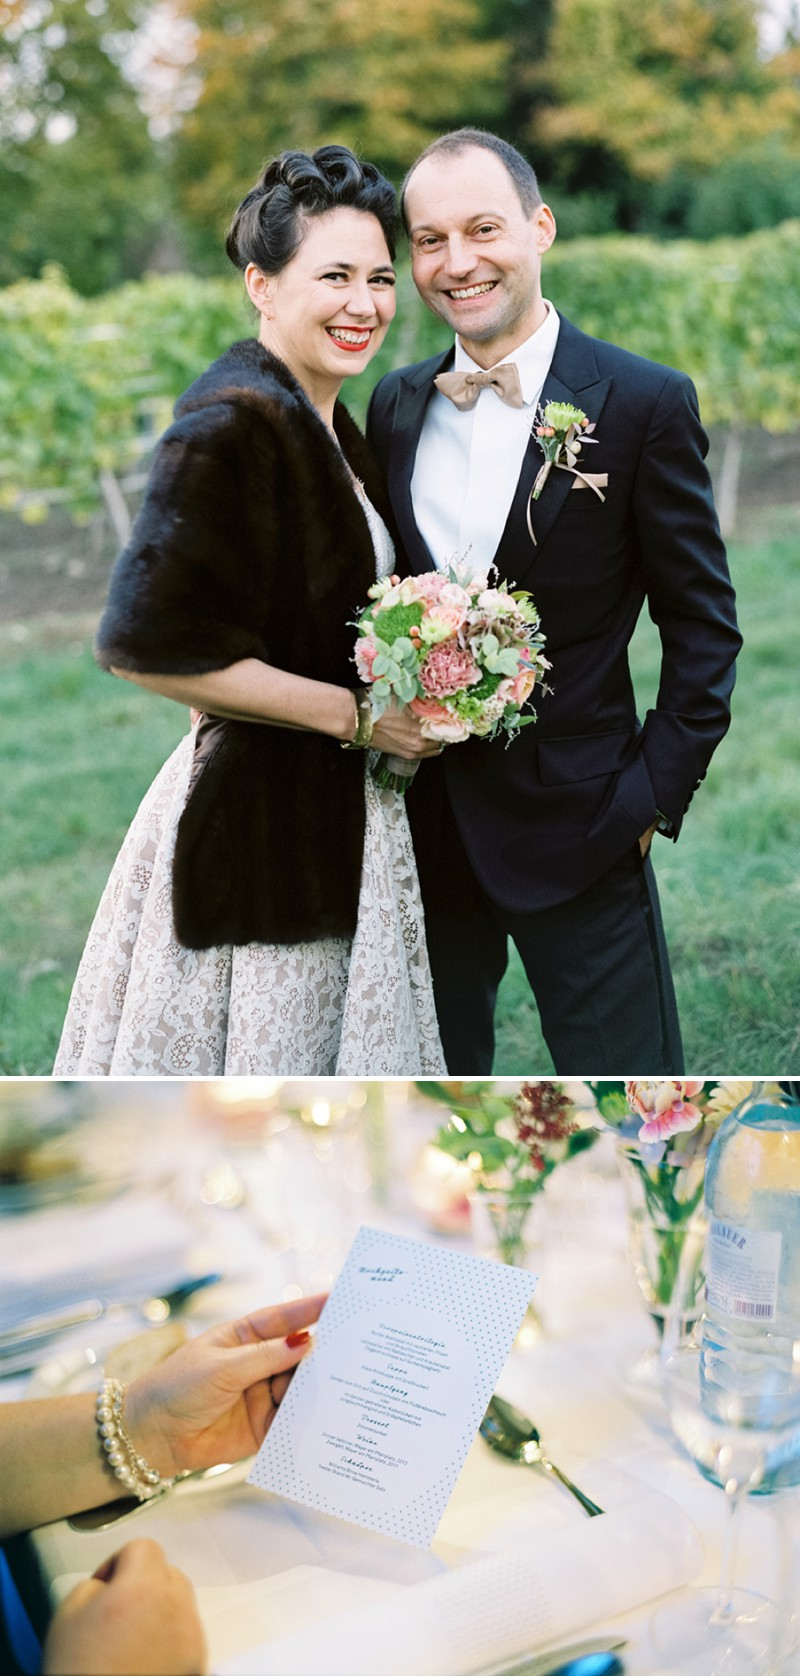 A Luxury And Intimate 1950s Style Autumn Wedding In Vienna With A Lena Hoschek Dress And Mink Stole And A Ranunculus Bouquet Photographed By Peaches & Mint._0011